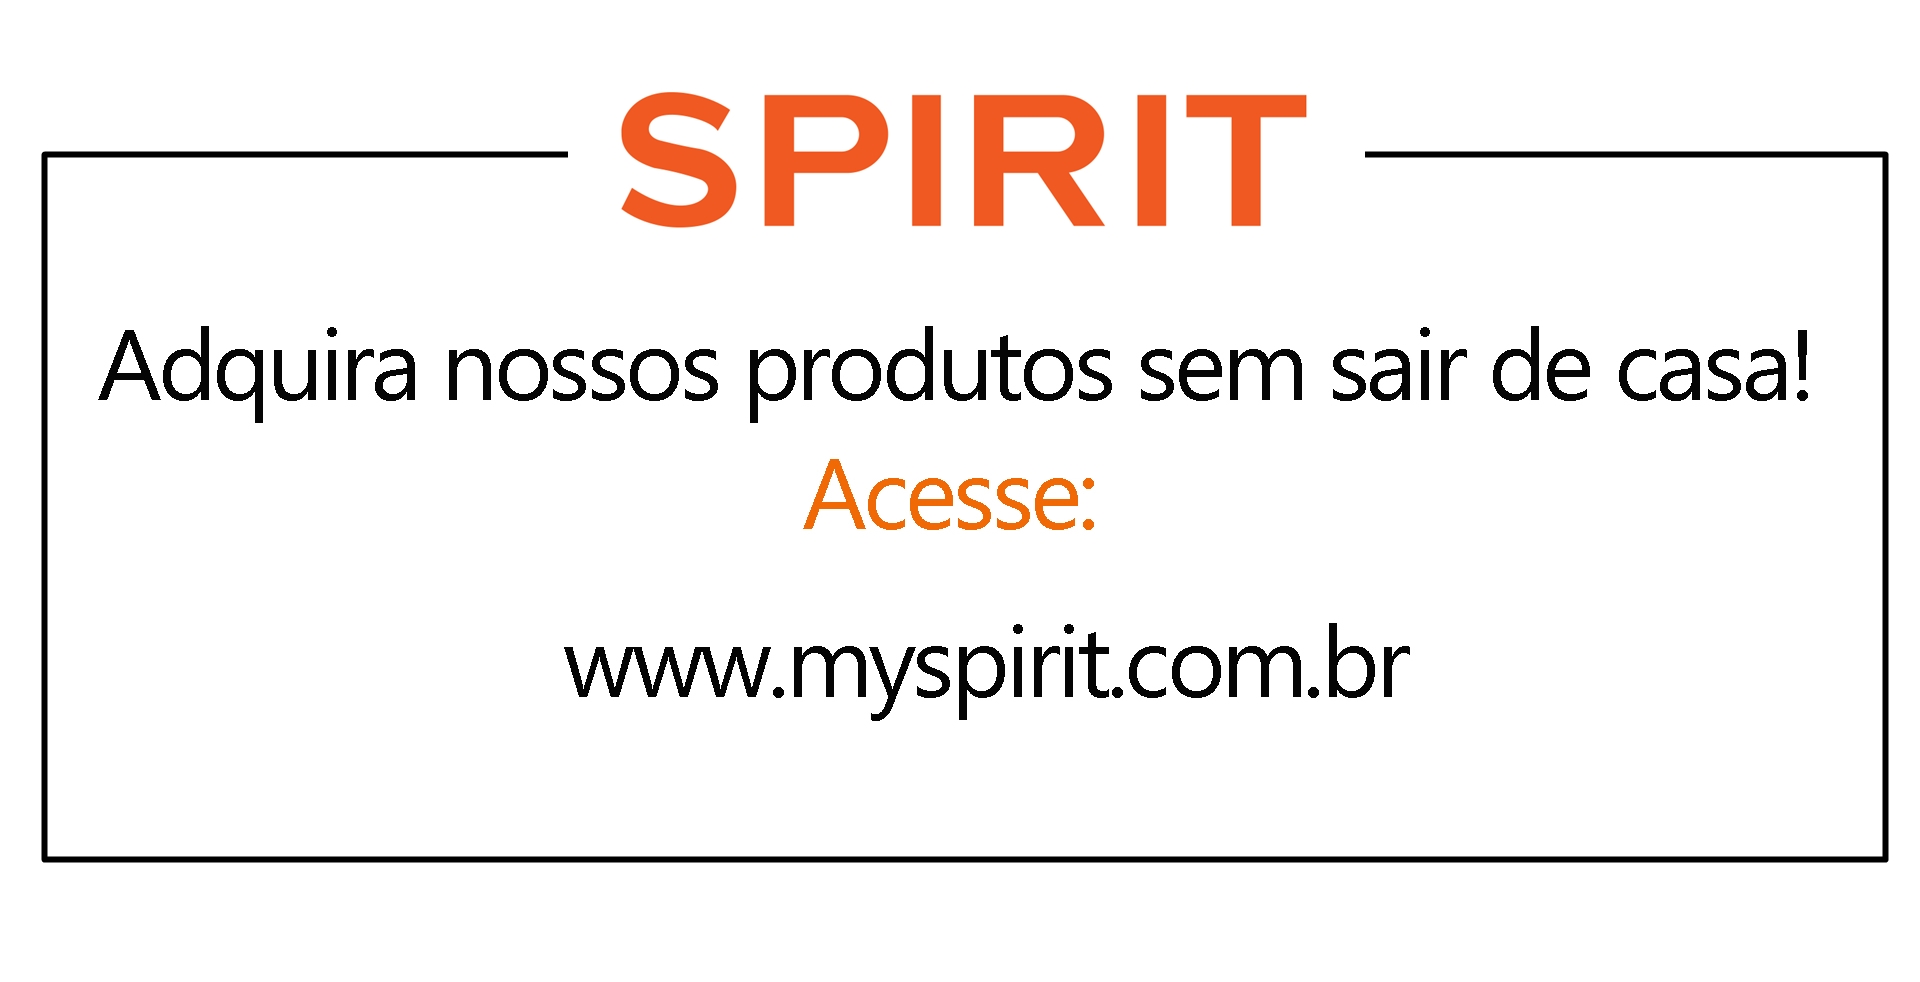 ventilador de teto Spirit - Blog Myspirit - banner site Spirit - manual do ventilador de teto